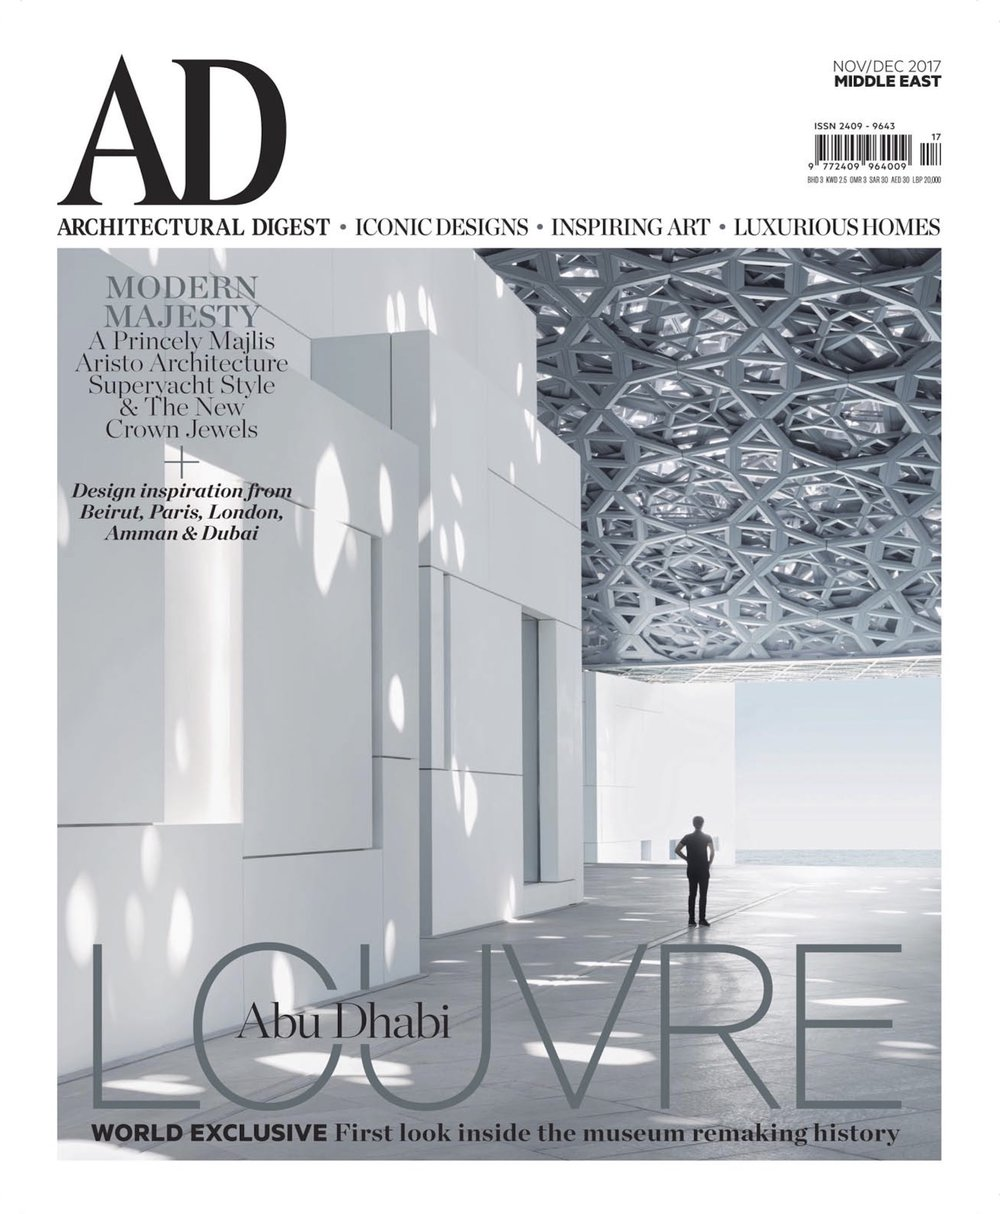 AD Middle East, Nov./Dec. 2017